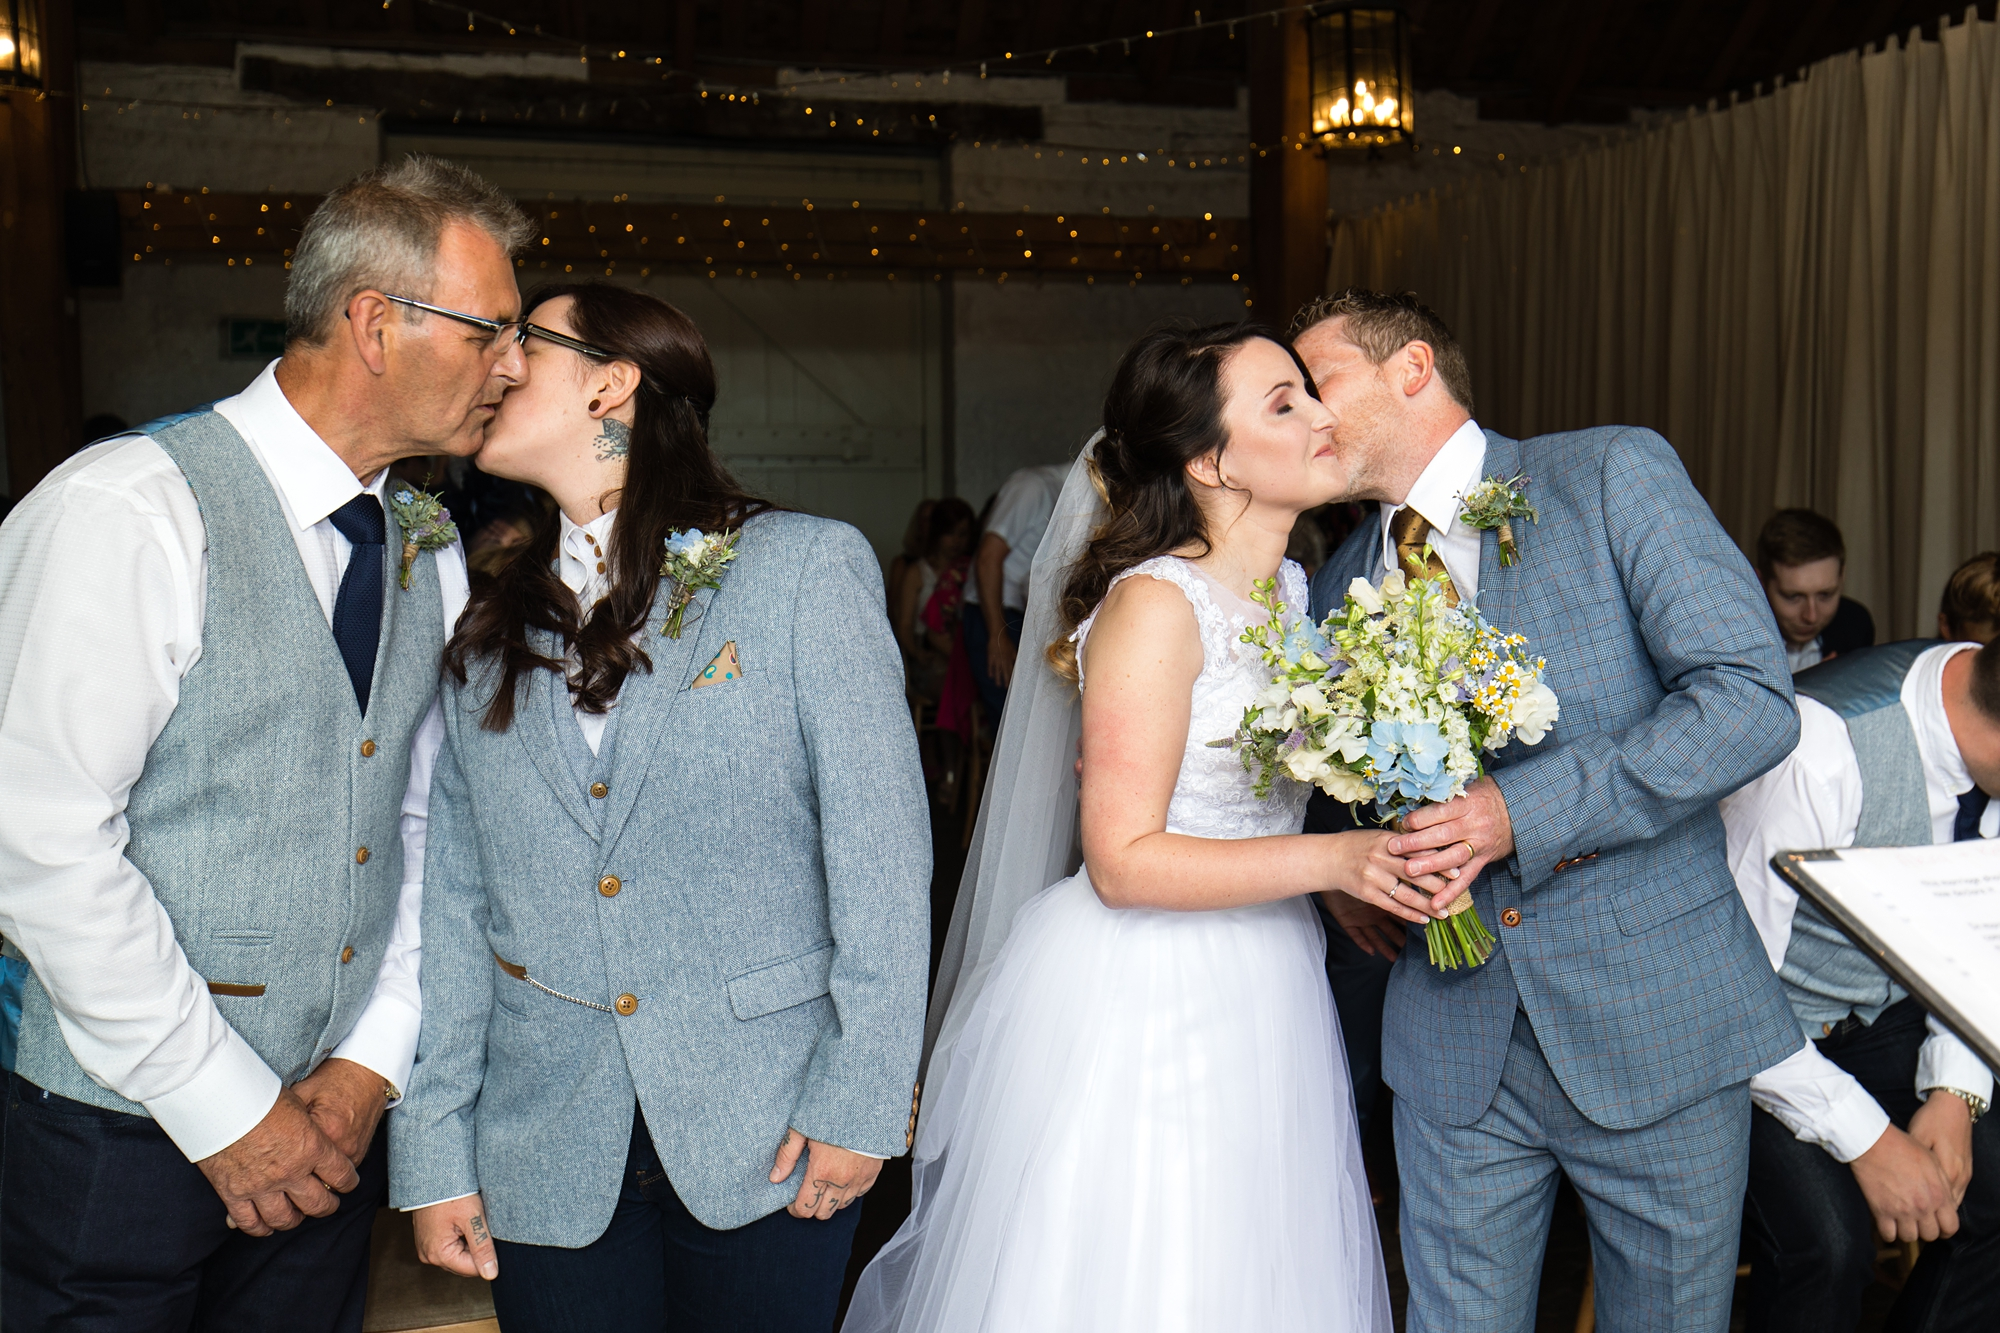 Same sex brides given away by dad york wedding photography